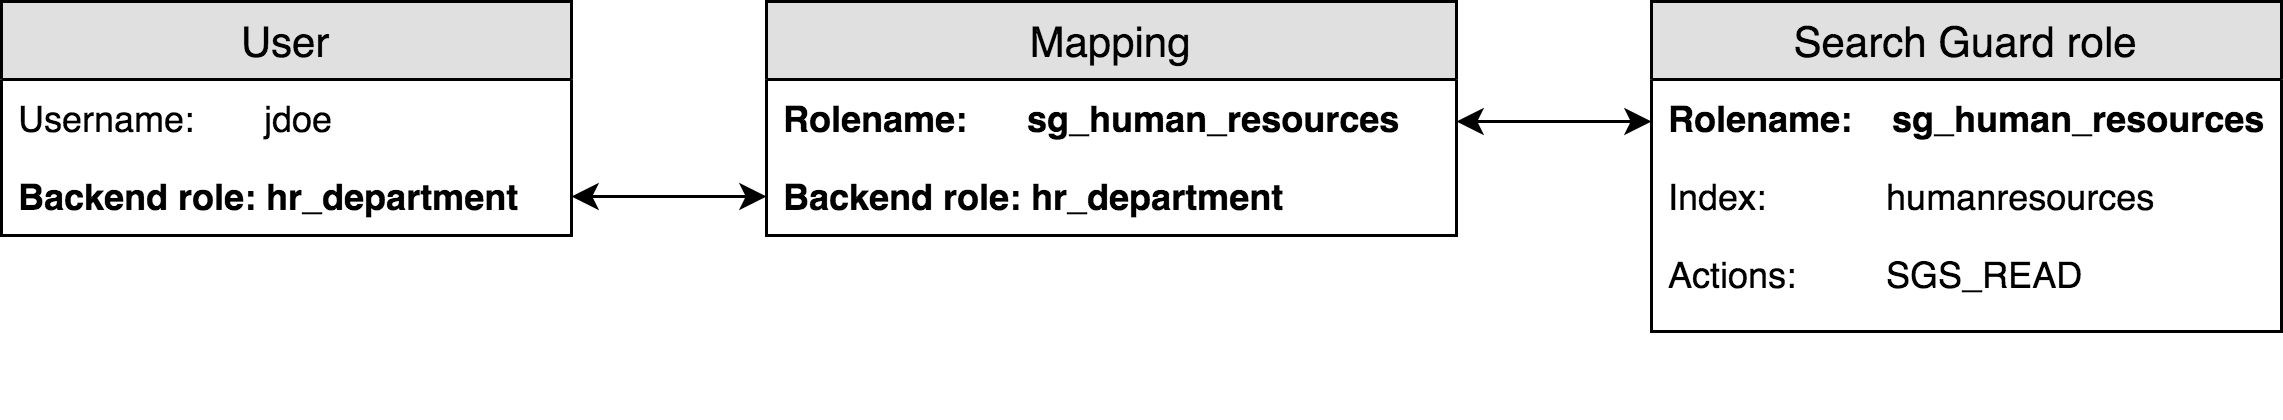 Roles mapping | Elasticsearch Security | Search Guard